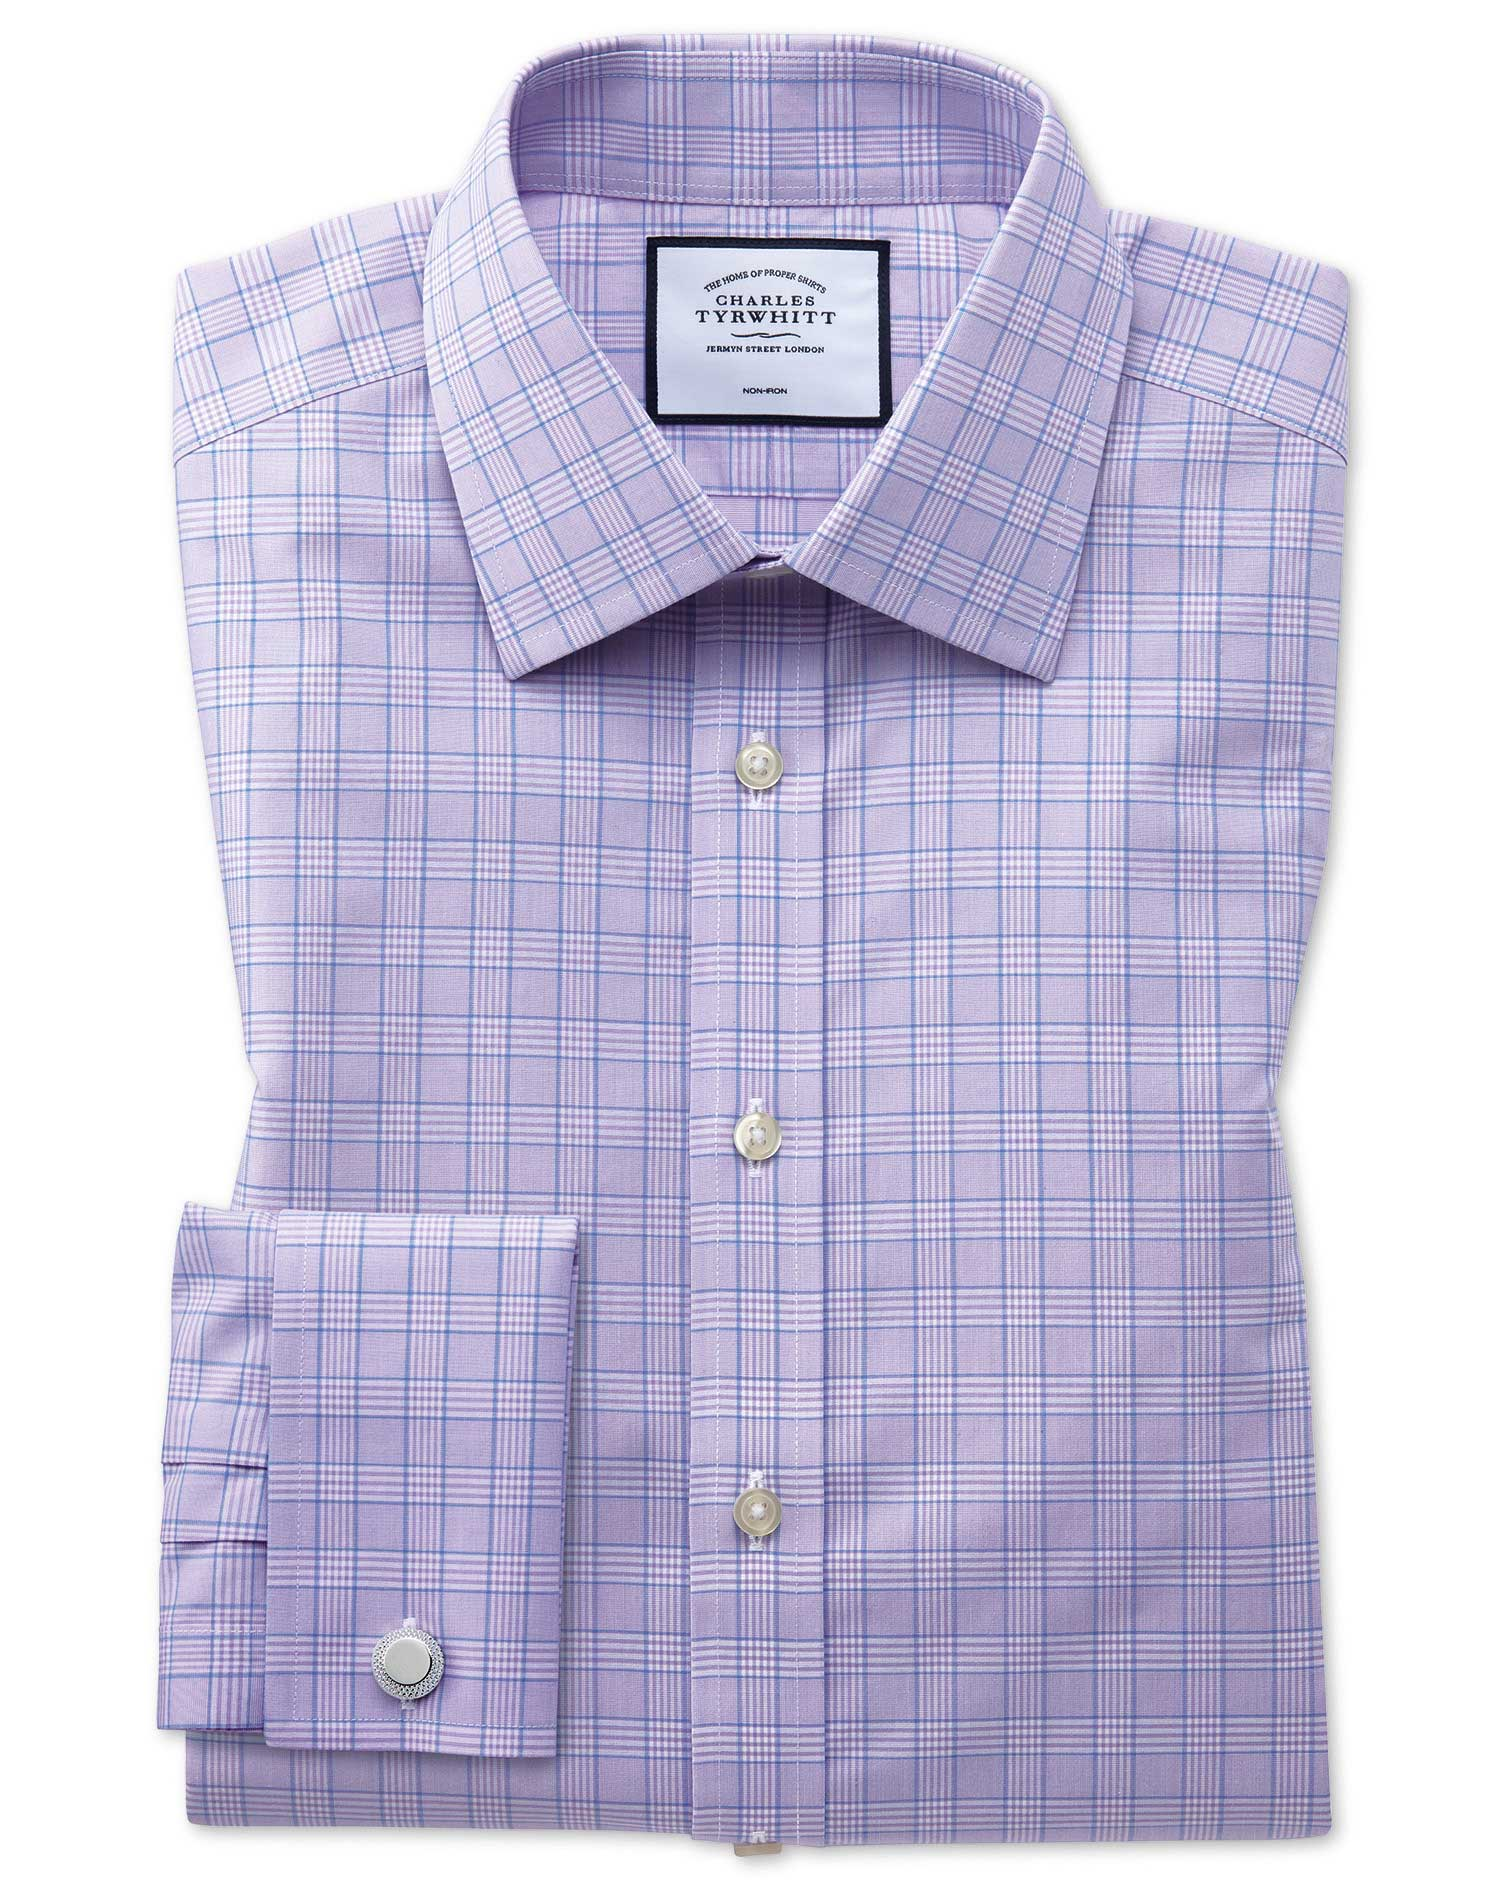 Classic Fit Non-Iron Lilac and Blue Prince Of Wales Check Cotton Formal Shirt Single Cuff Size 16.5/34 by Charles Tyrwhitt from Charles Tyrwhitt